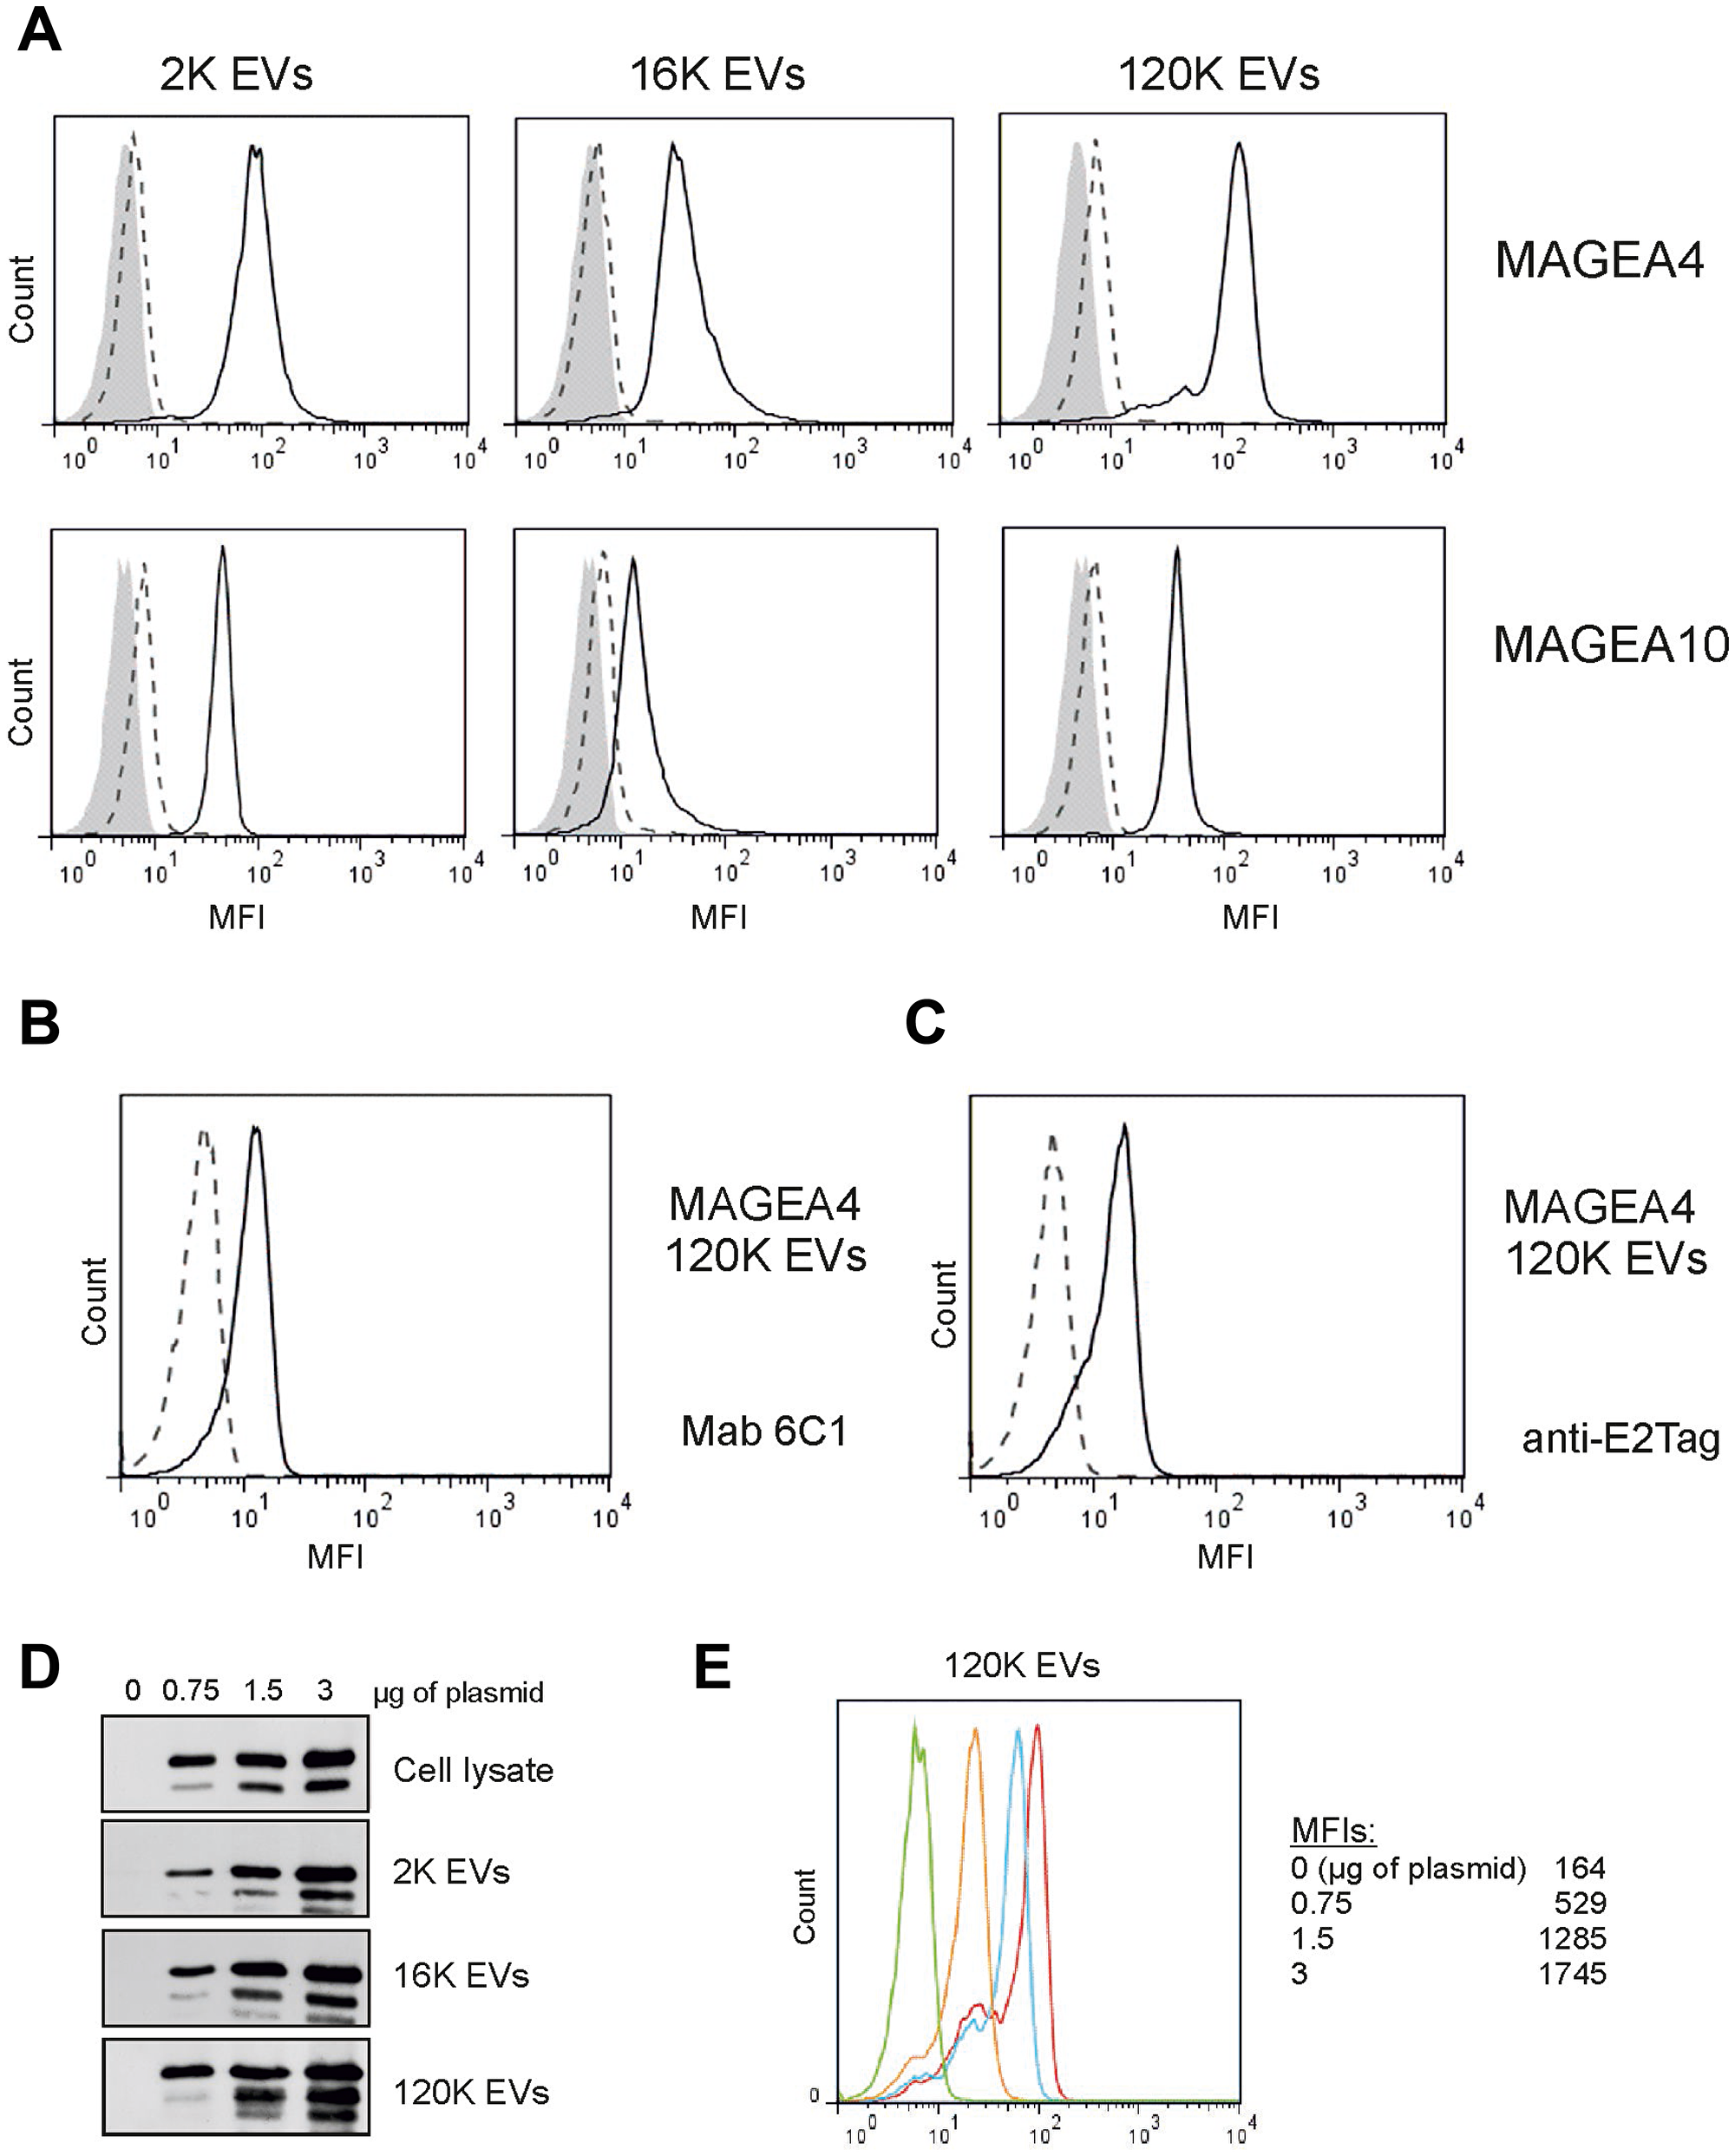 MAGEA proteins are expressed on the surface of EVs.